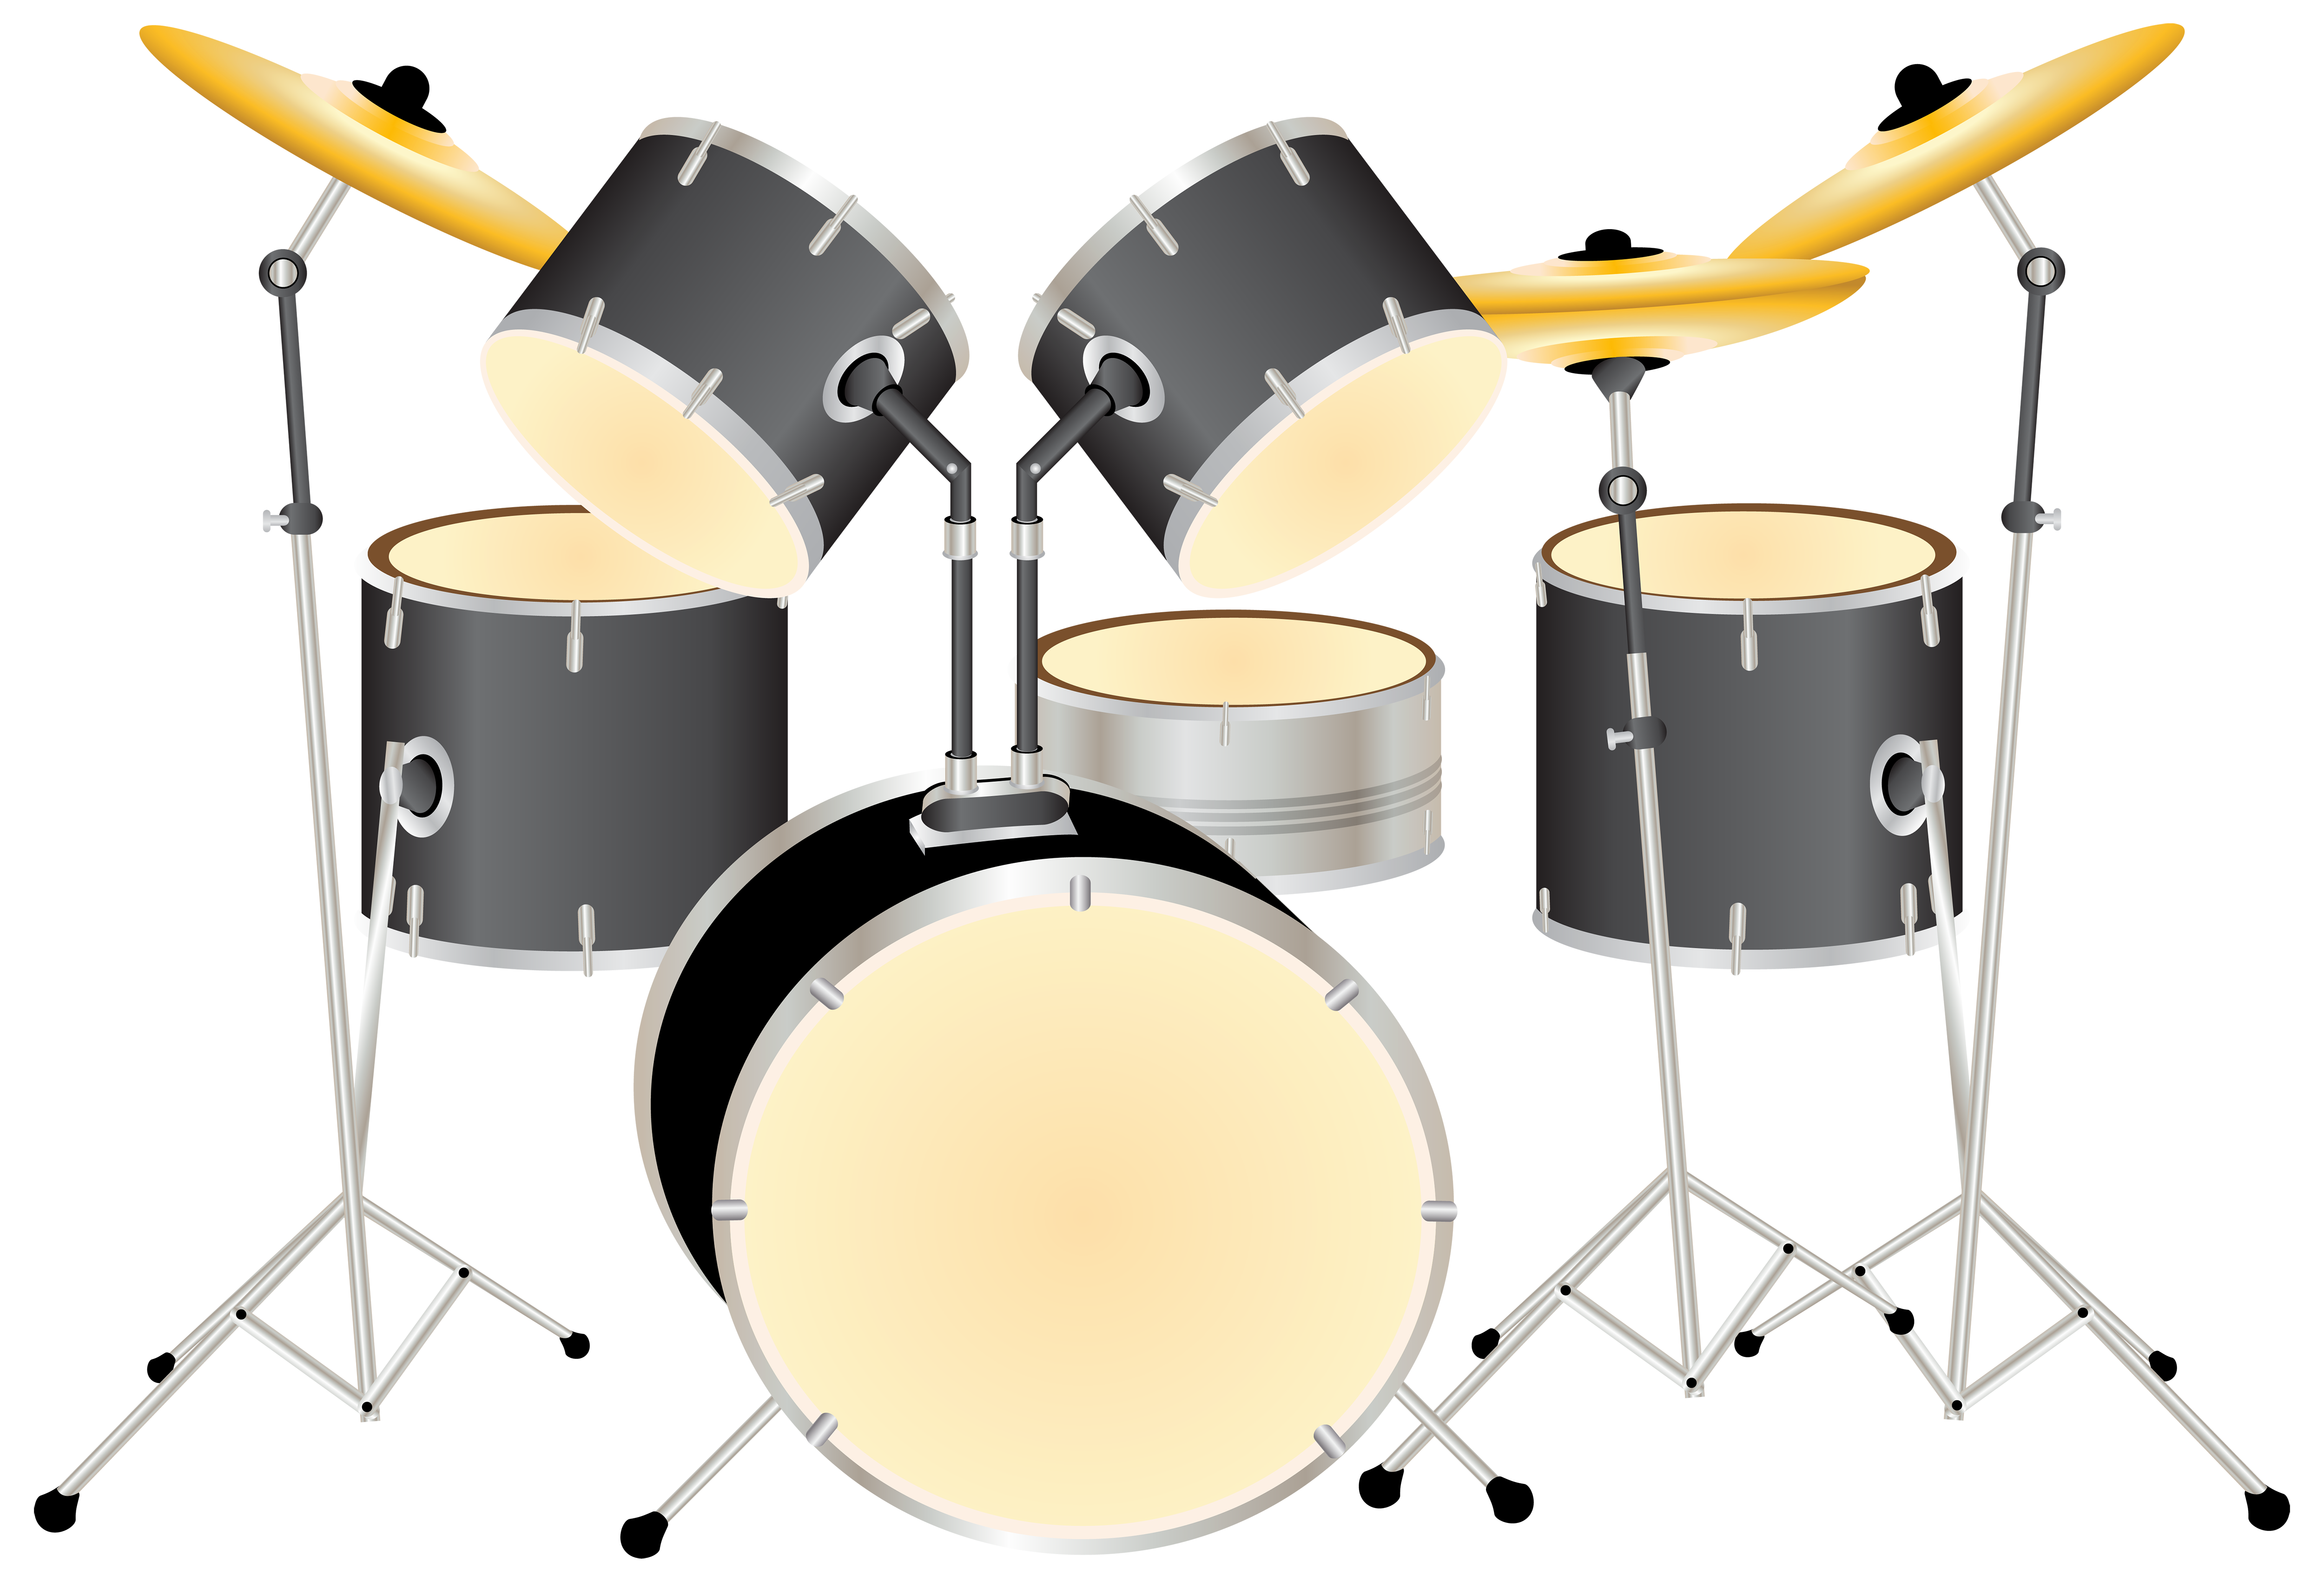 Drum set pictures clipart image royalty free stock Drum Kit PNG Clipart - Best WEB Clipart image royalty free stock